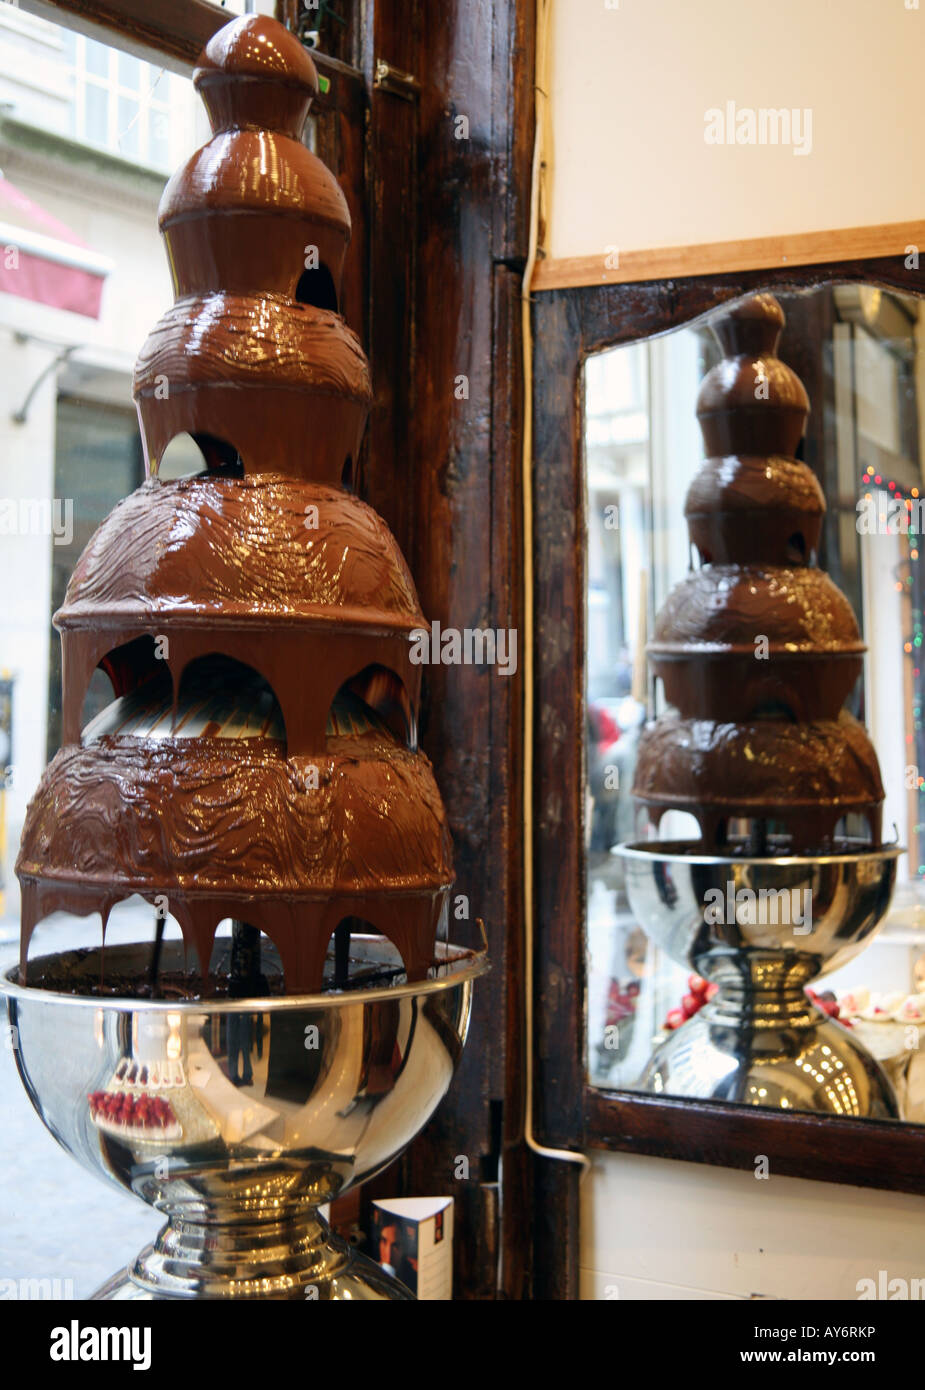 Chocolate Fountain In Brussels Shop Stock Photo 17011353 Alamy